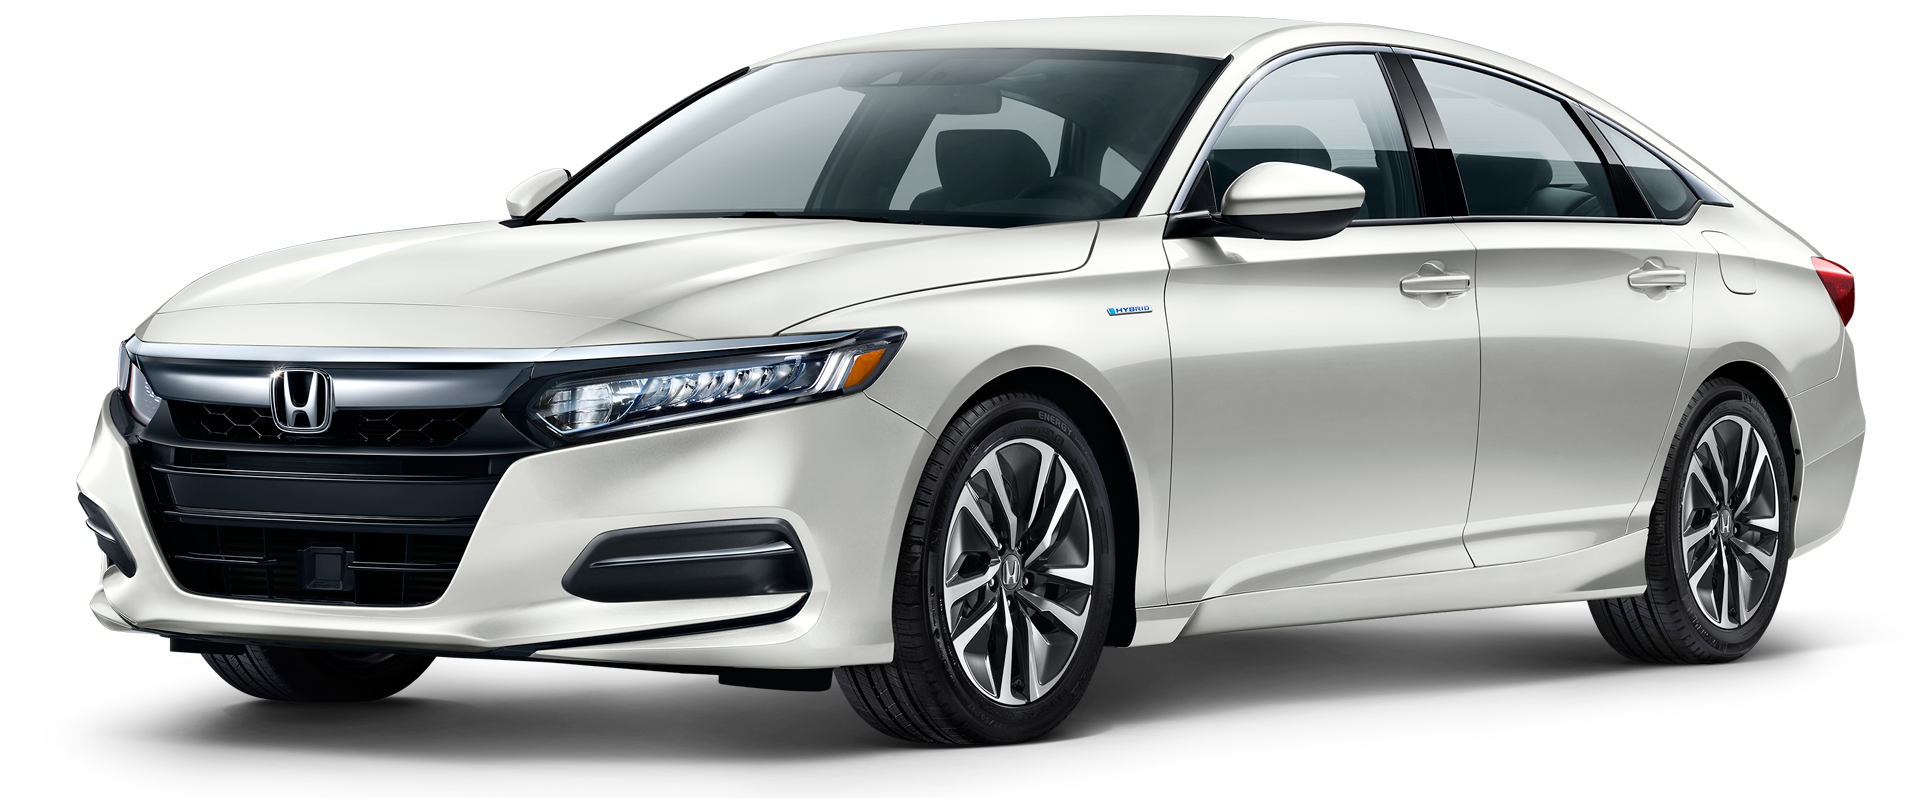 2018 honda accord hybrid incentives specials offers in for Honda accord base model